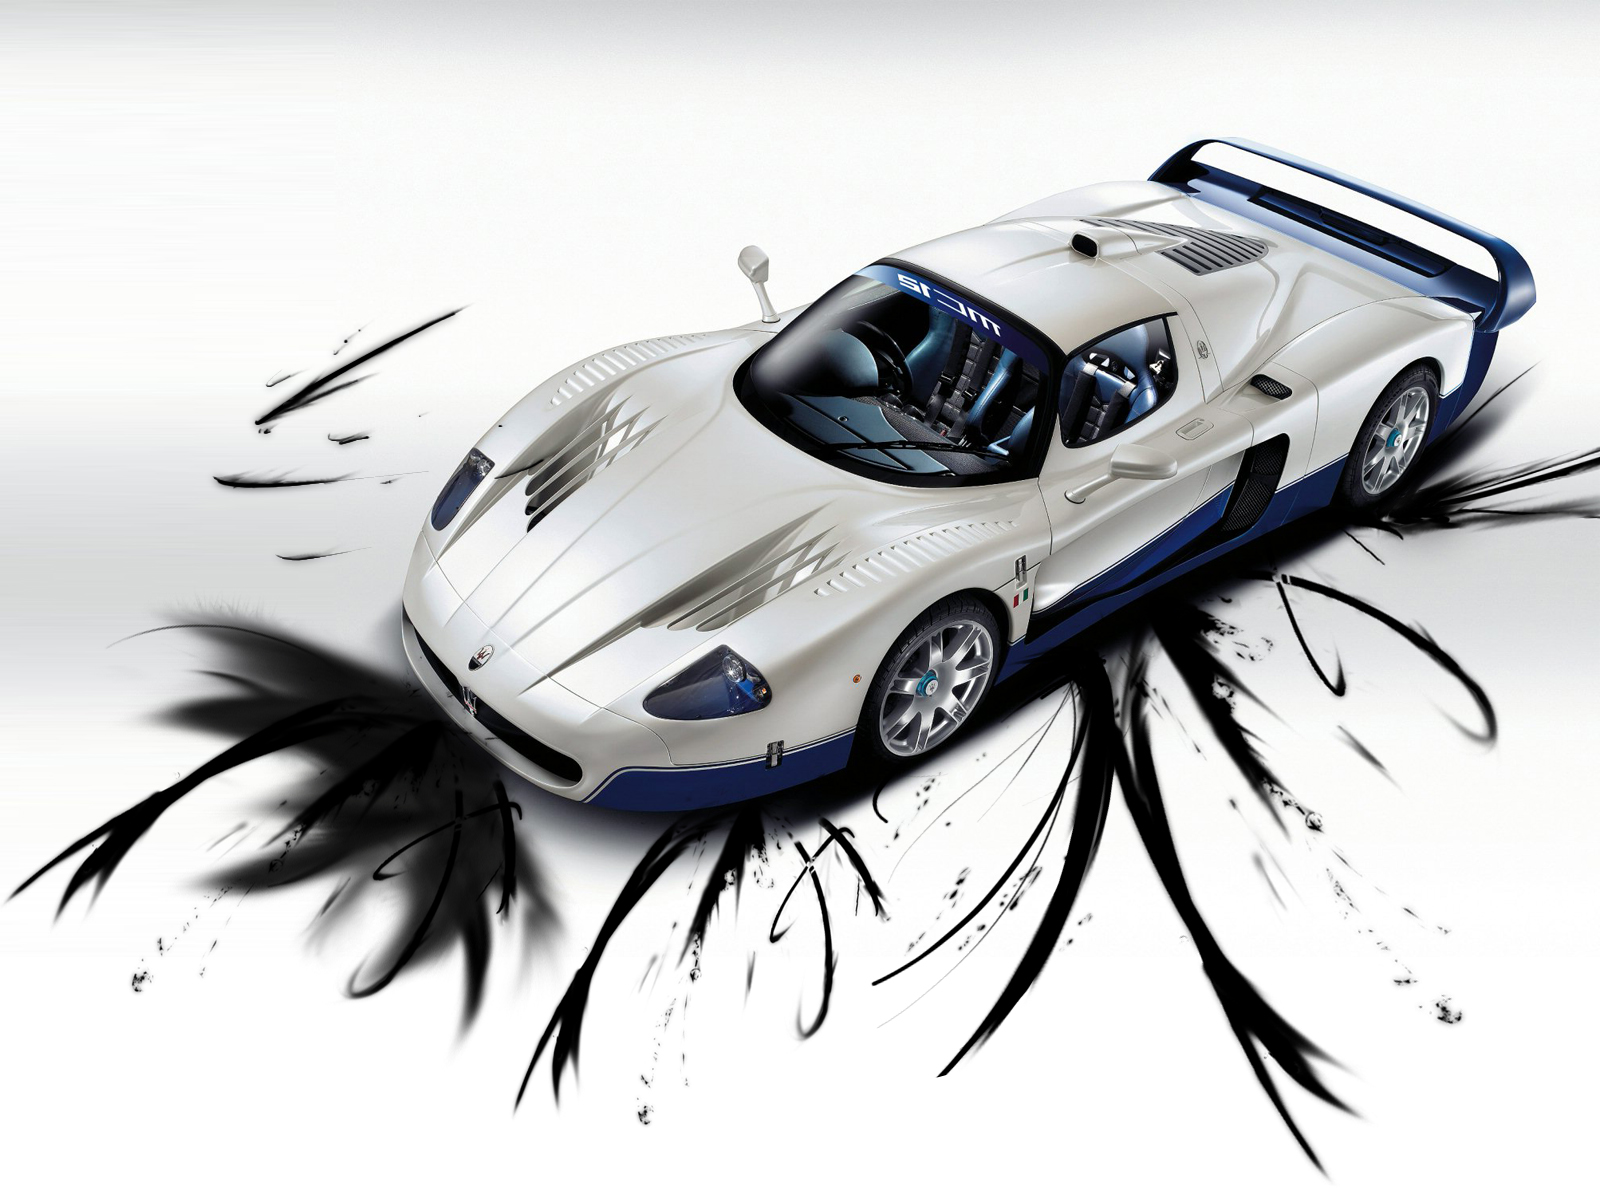 Hd Cool Car Wallpapers Fast Cars: Wallpapers